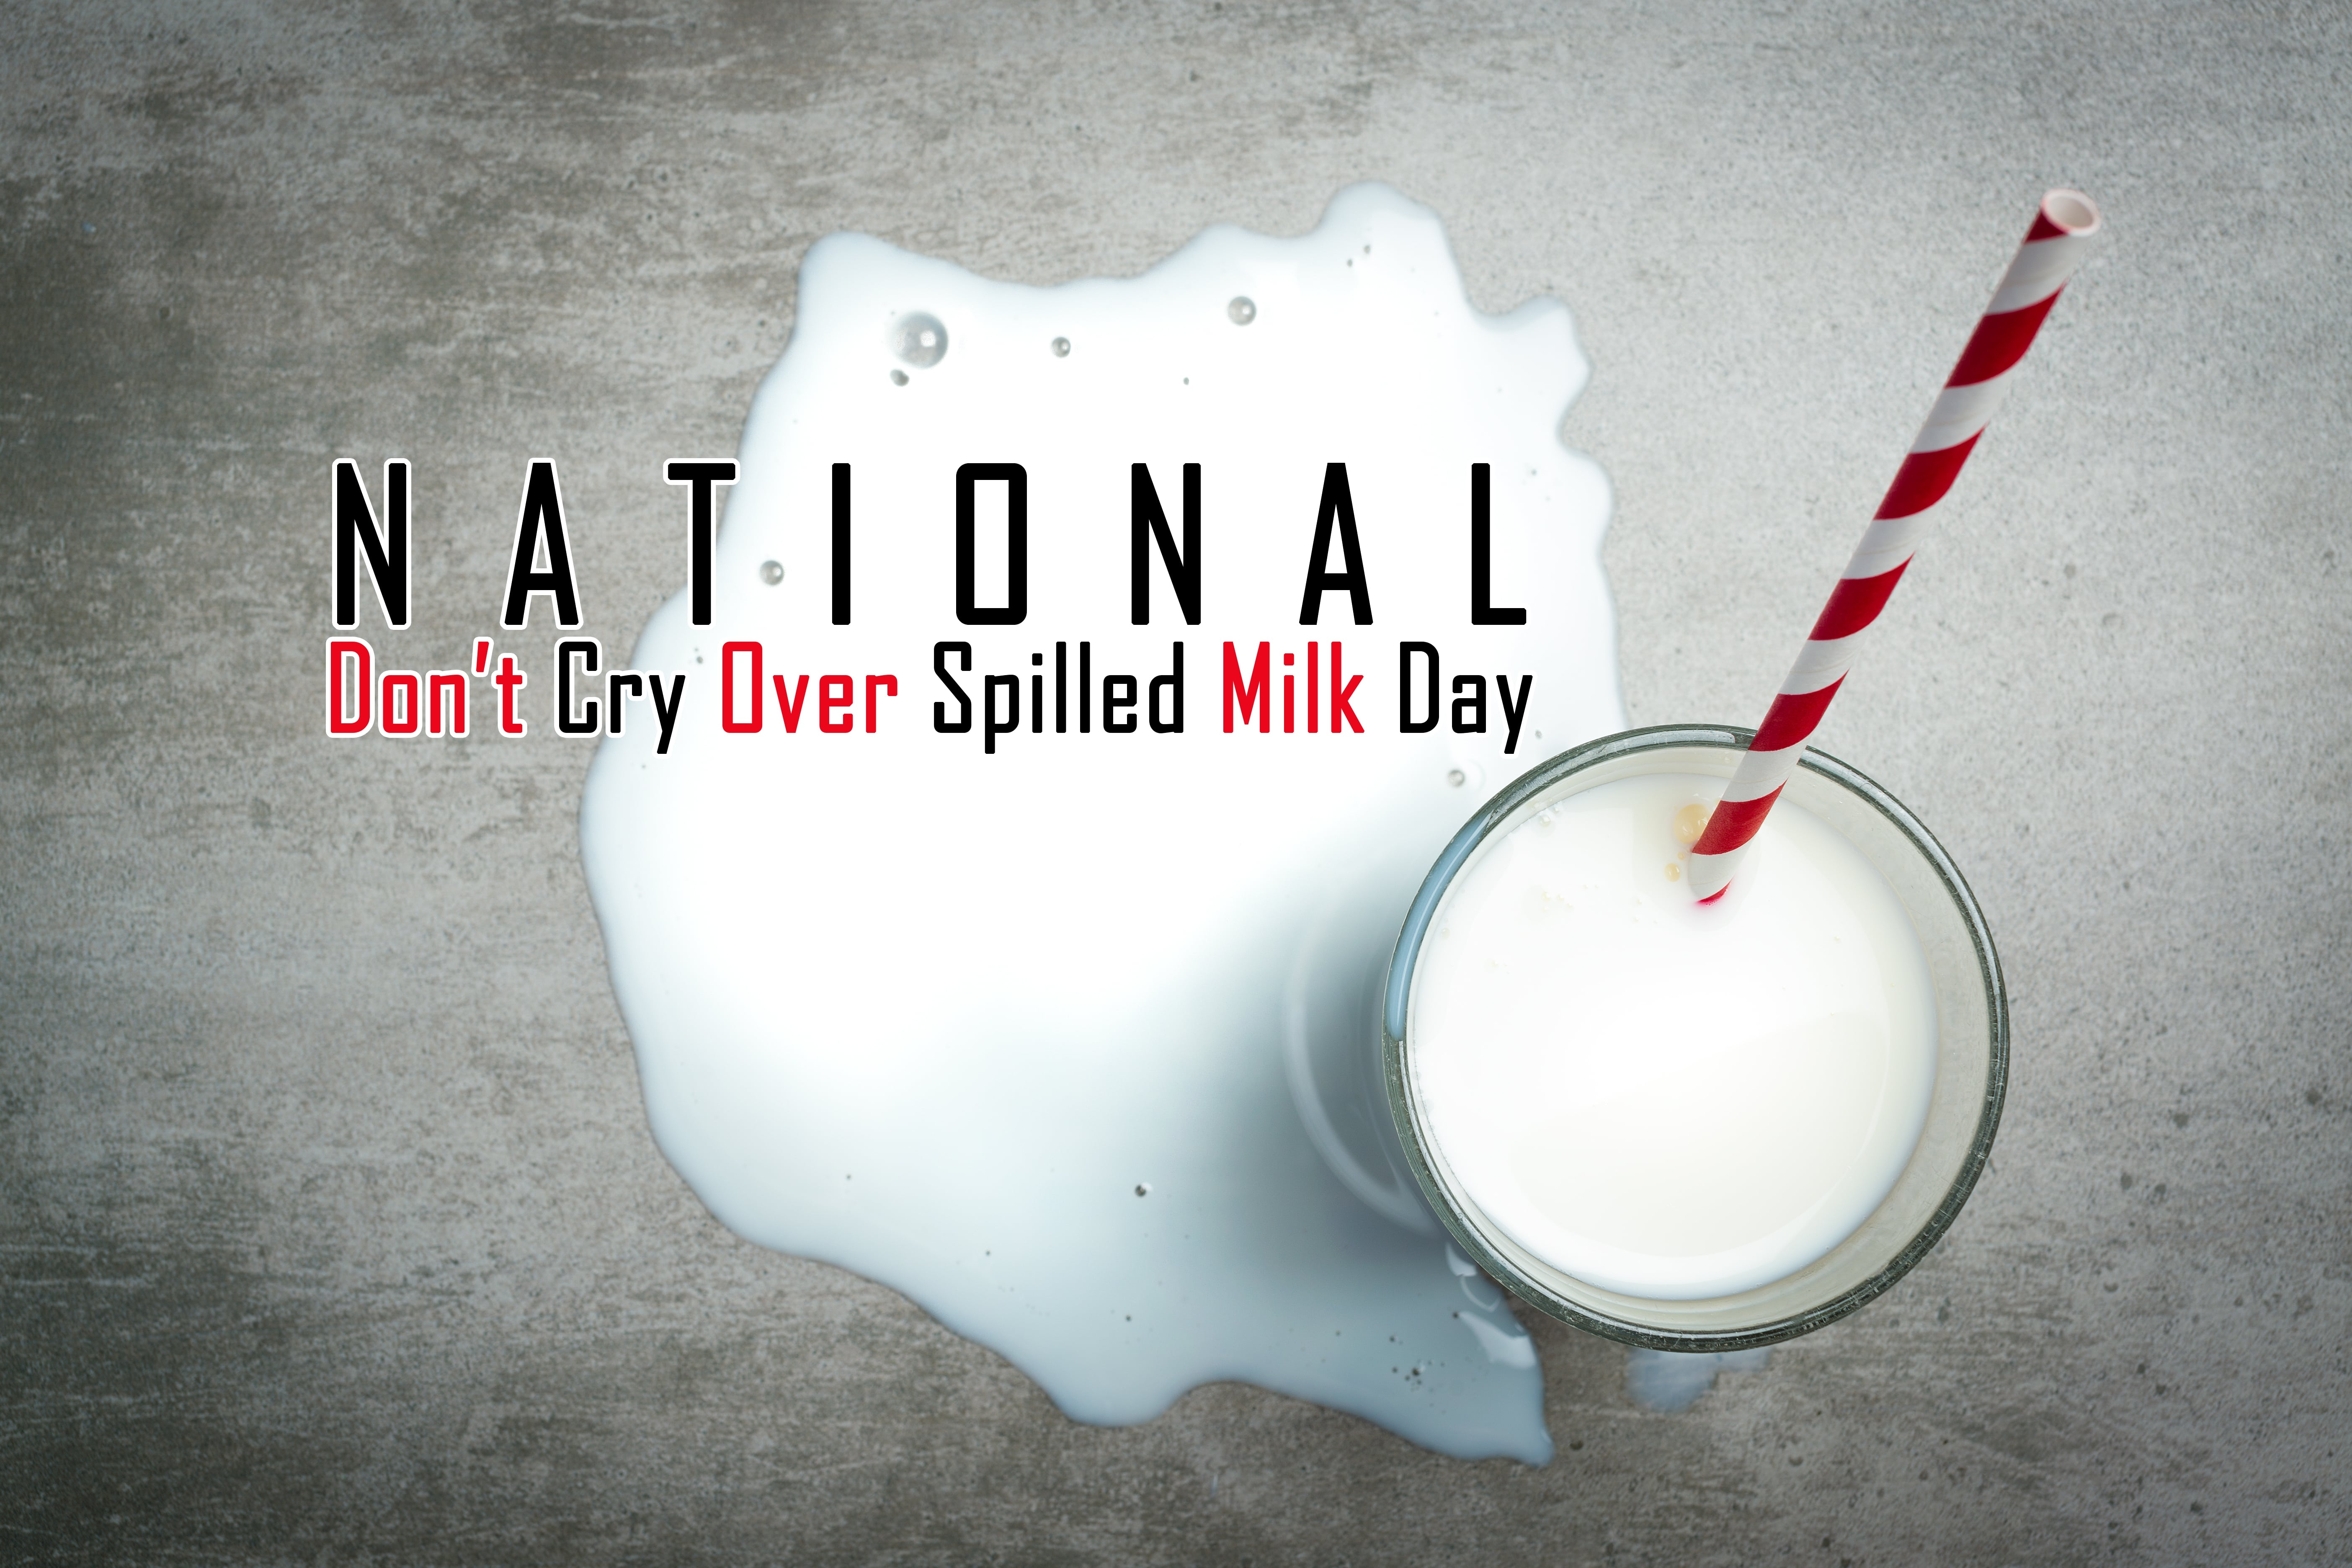 National Dont Cry Over Spilled Milk Day February 11th The